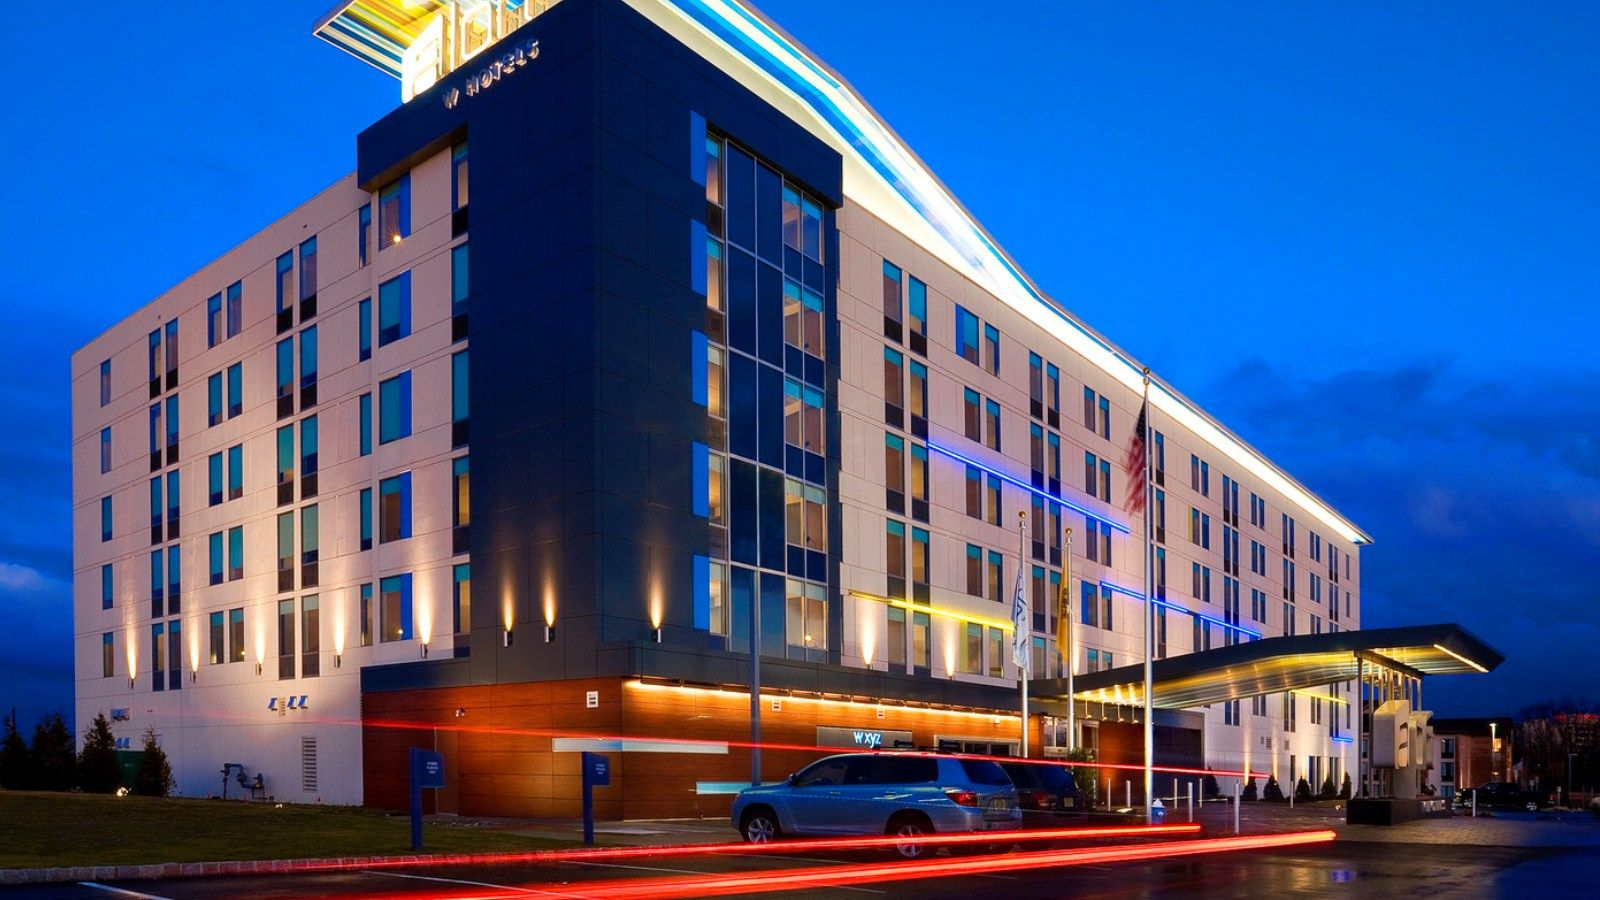 Planning A Visit To Mount Laurel Nj Philadelphia Or South Jersey Check Out Our Mt Hotel Aloft Zip The City Center